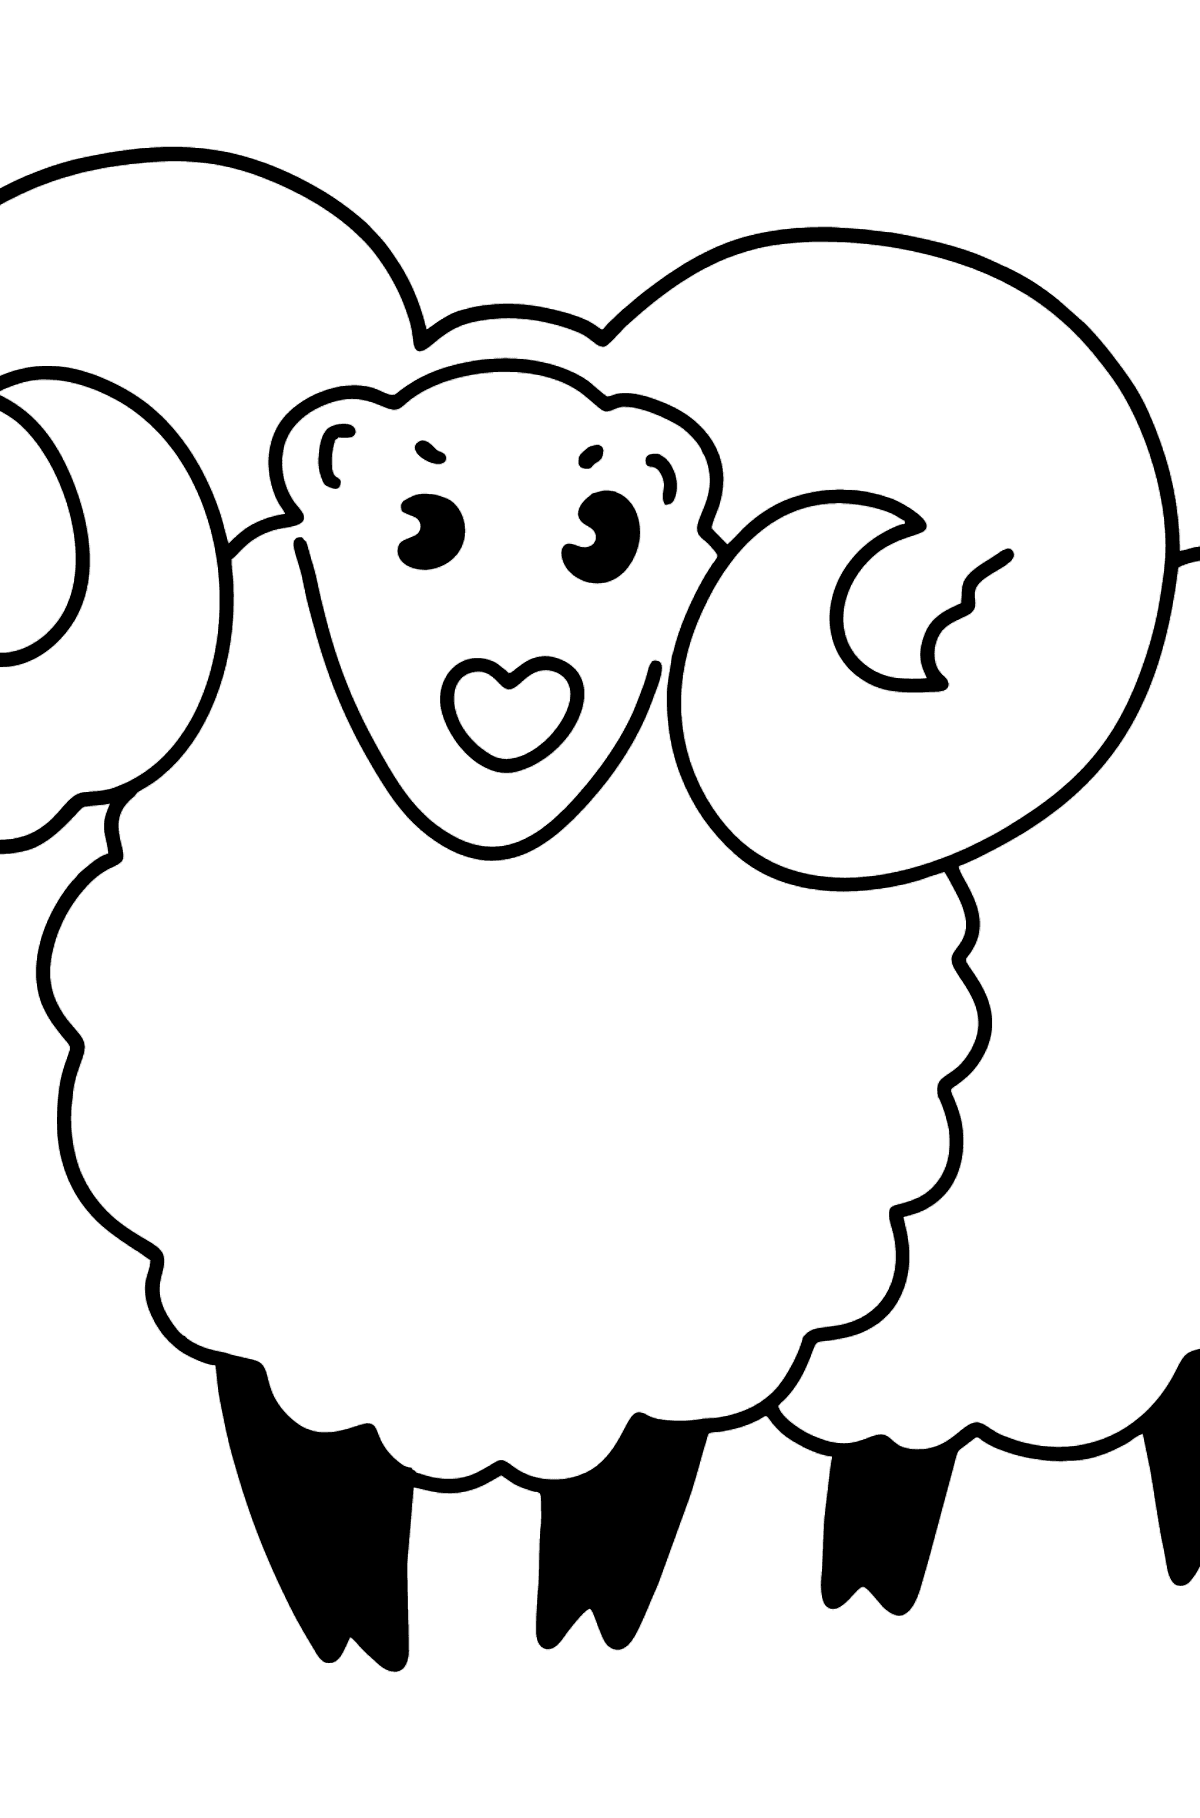 Home Lamb coloring page - Coloring Pages for Kids